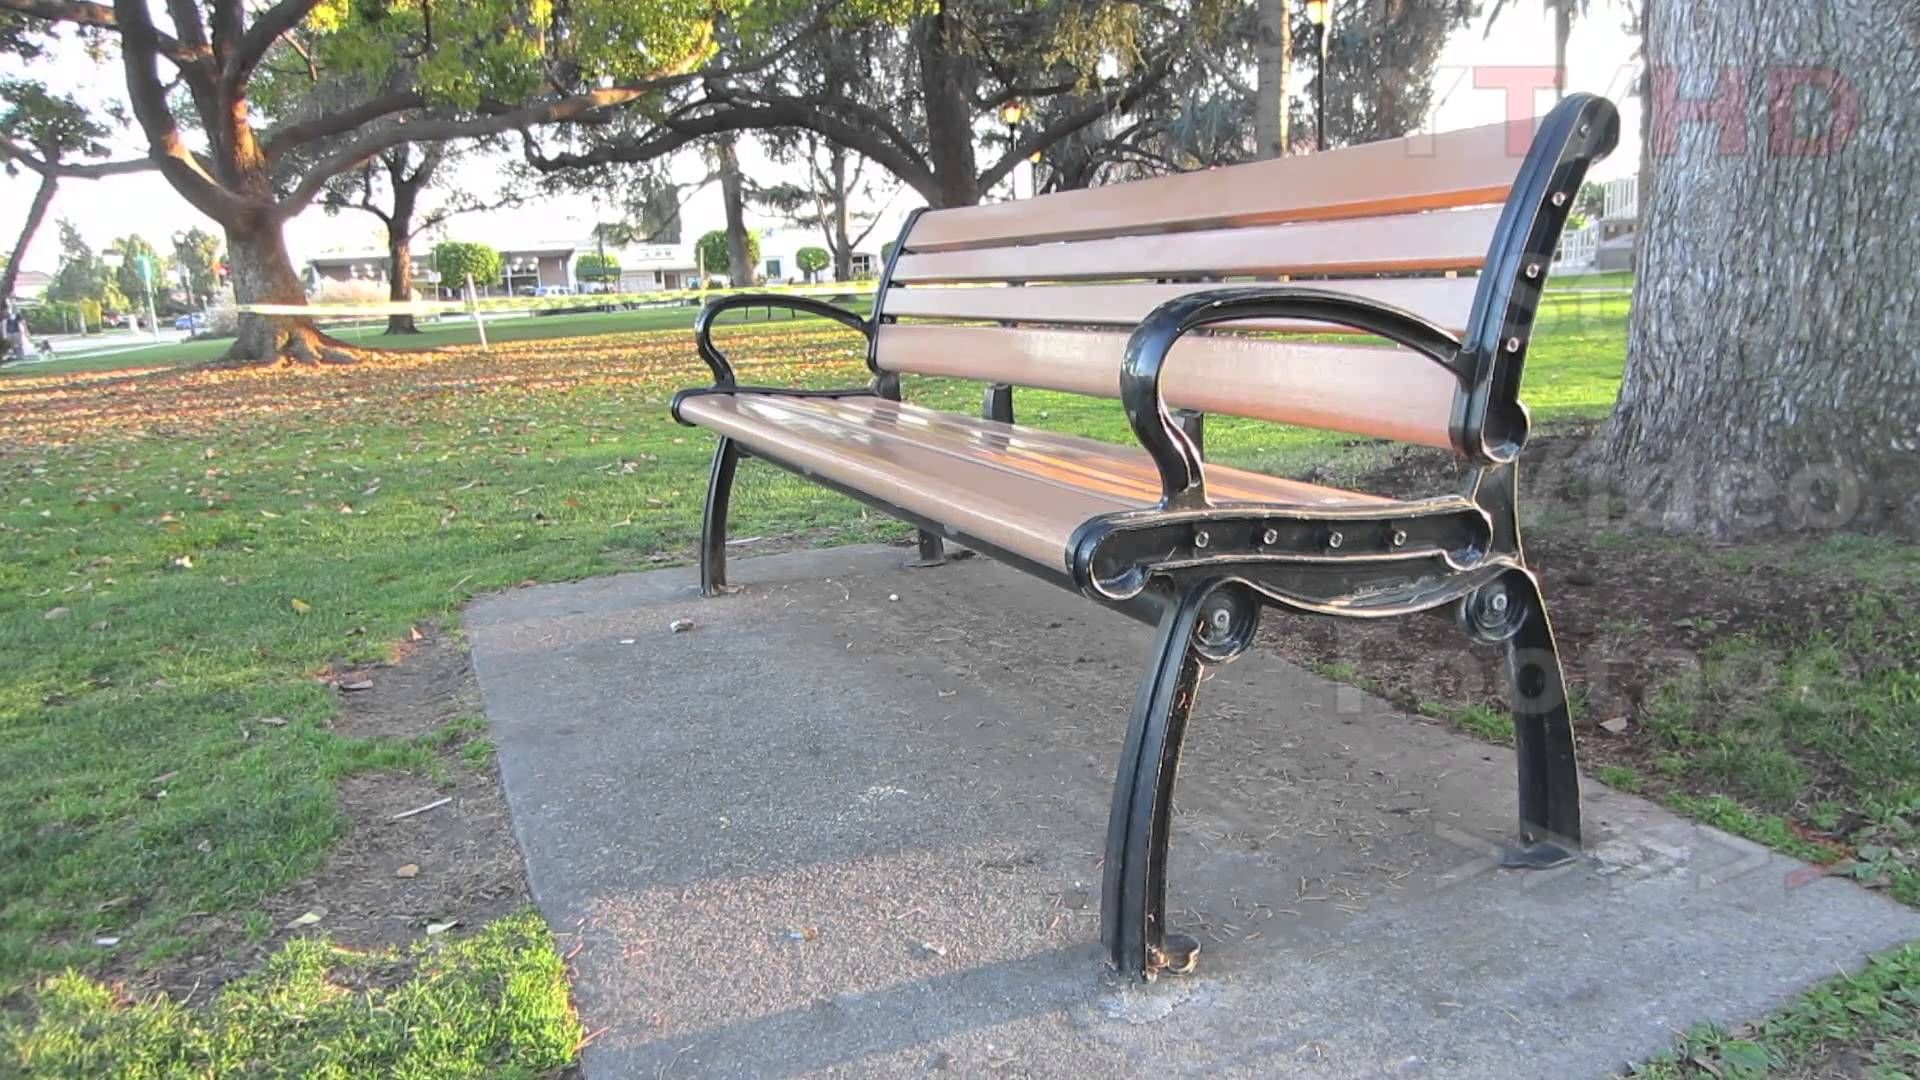 Wooden Park Benches Front Outdoor Public Wooden Park Bench W Metal Wrought Or Cast